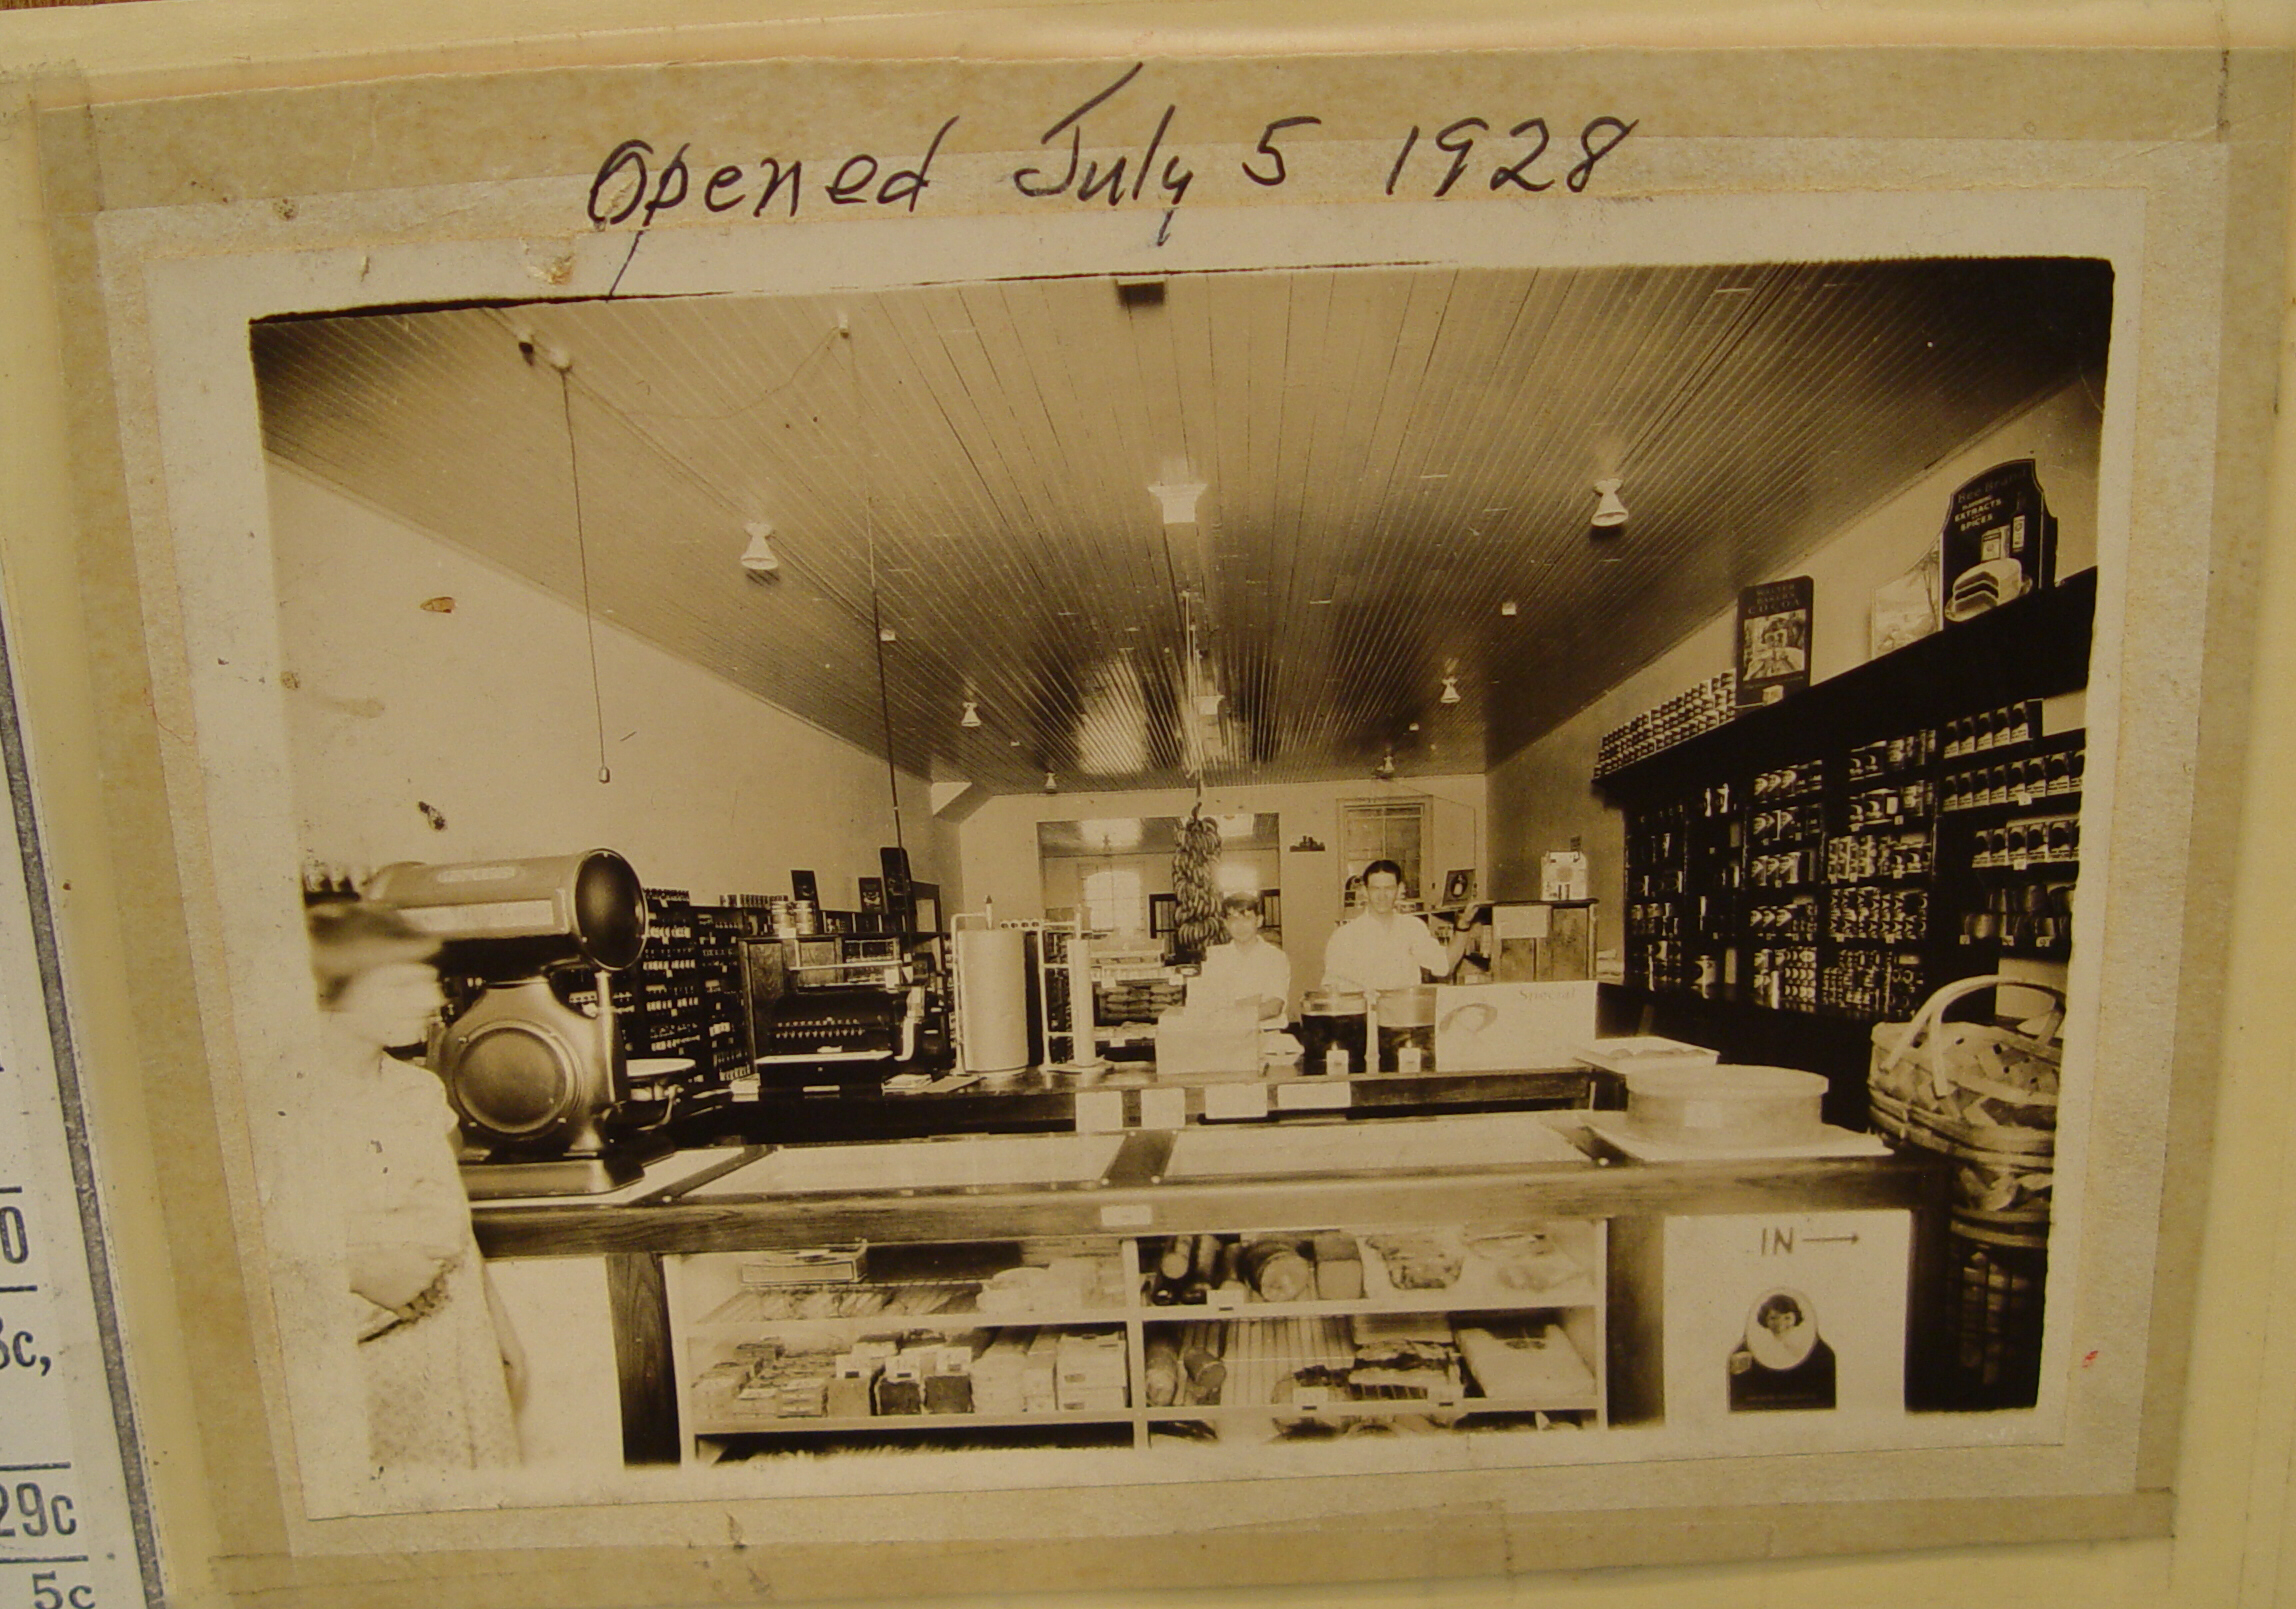 Mills Mercantile -July 5th, 1928